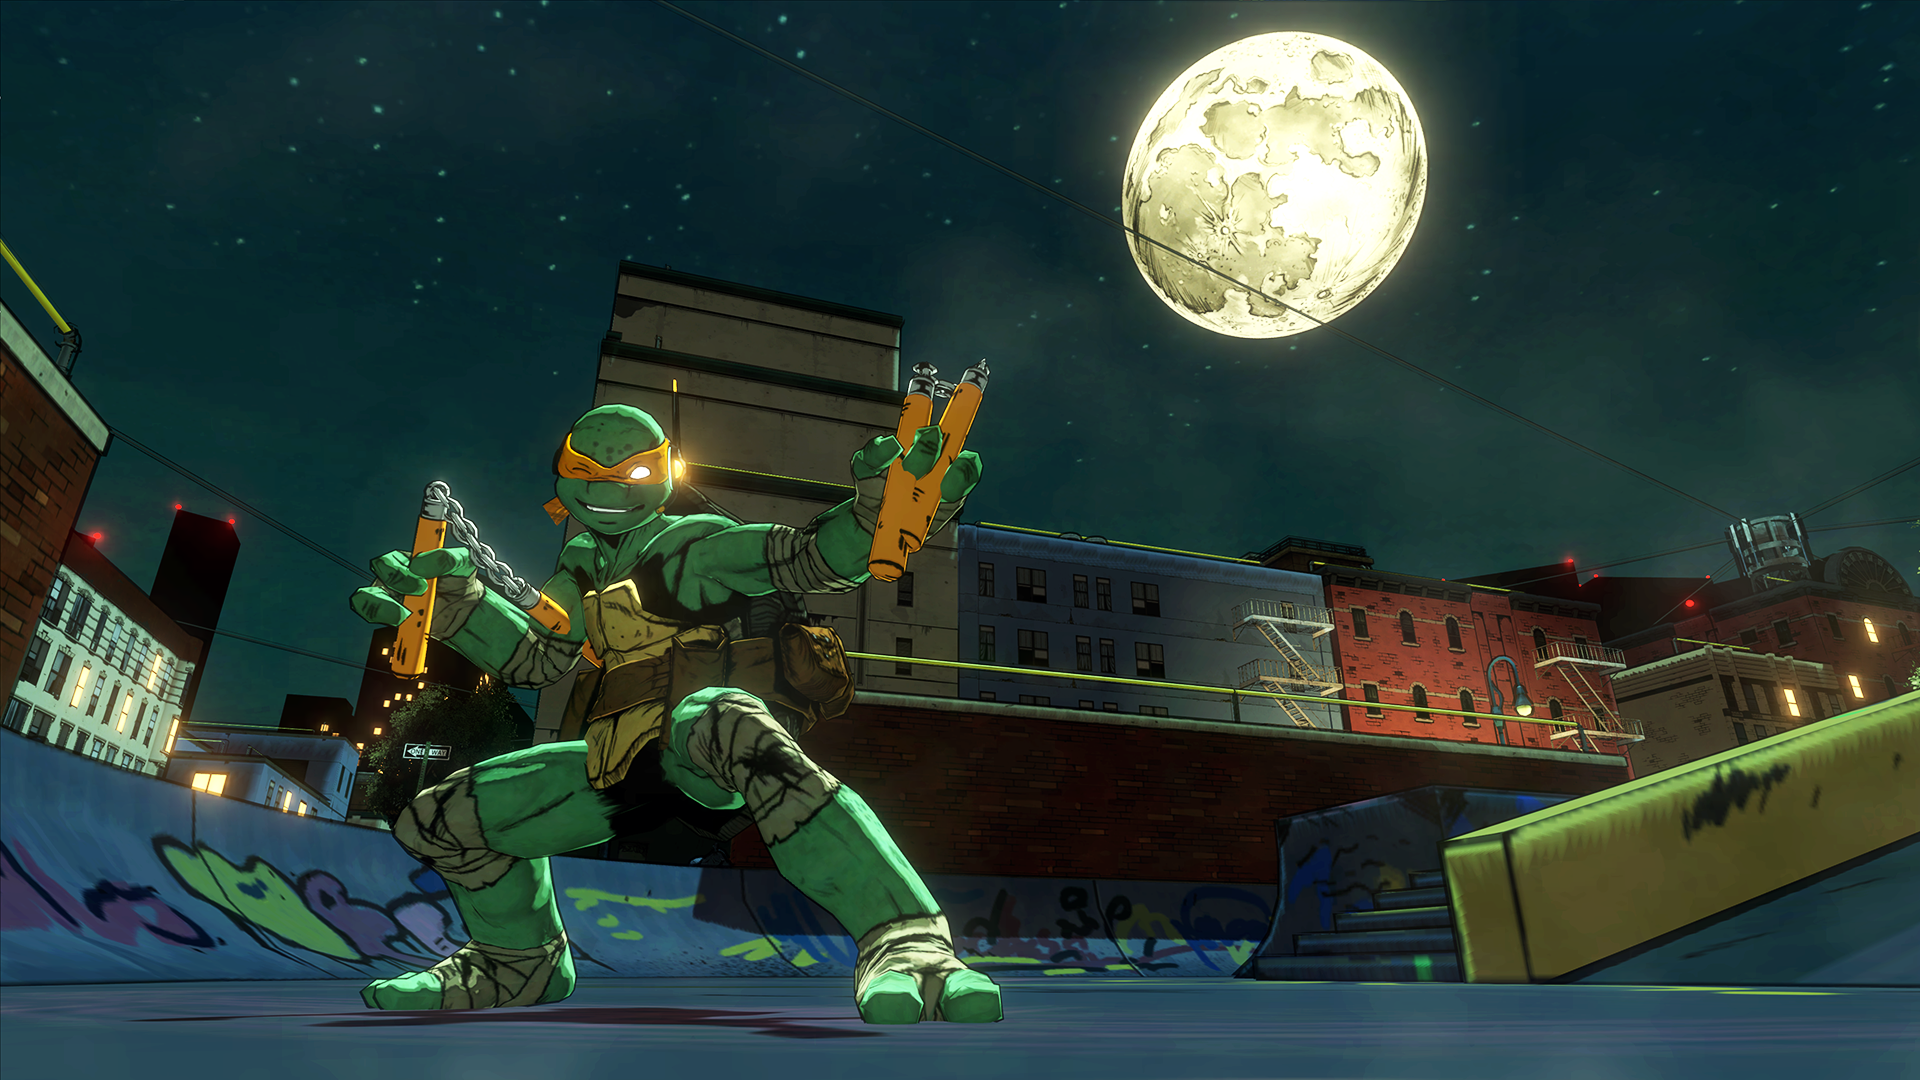 Watch The Turtles In Action In This New Trailer